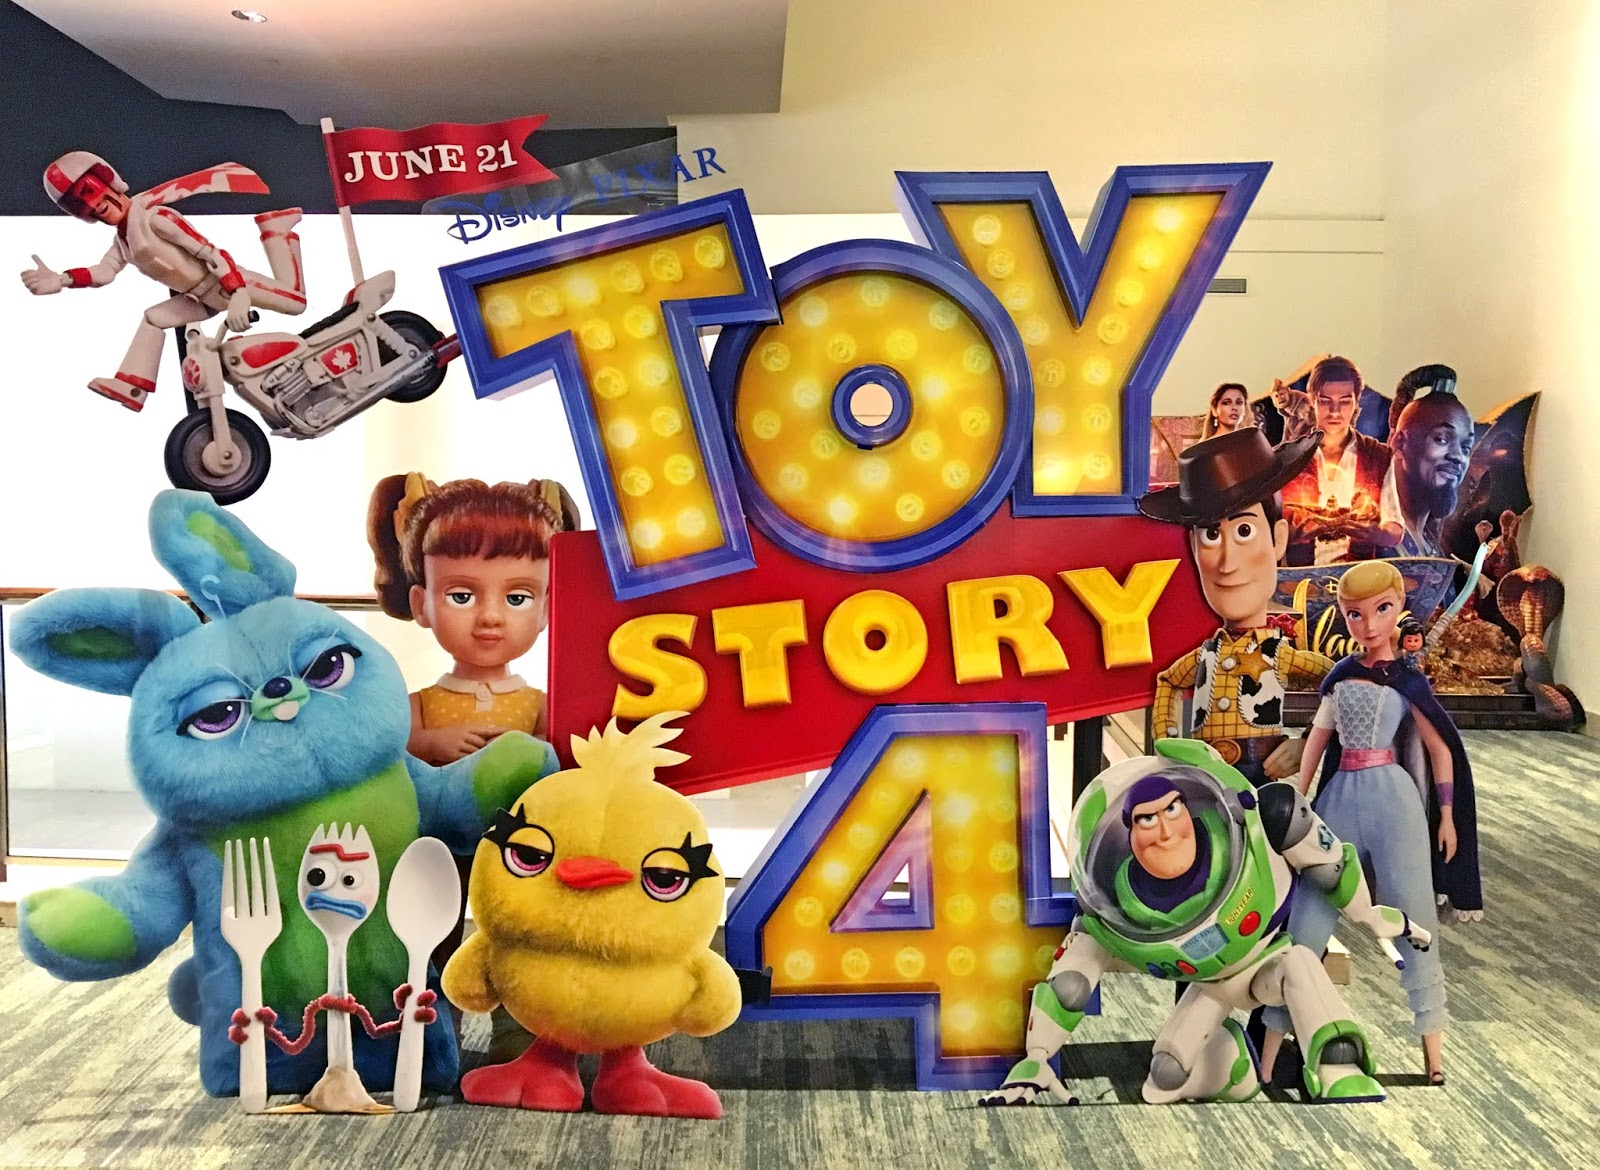 toy story 4 movie theater standee display